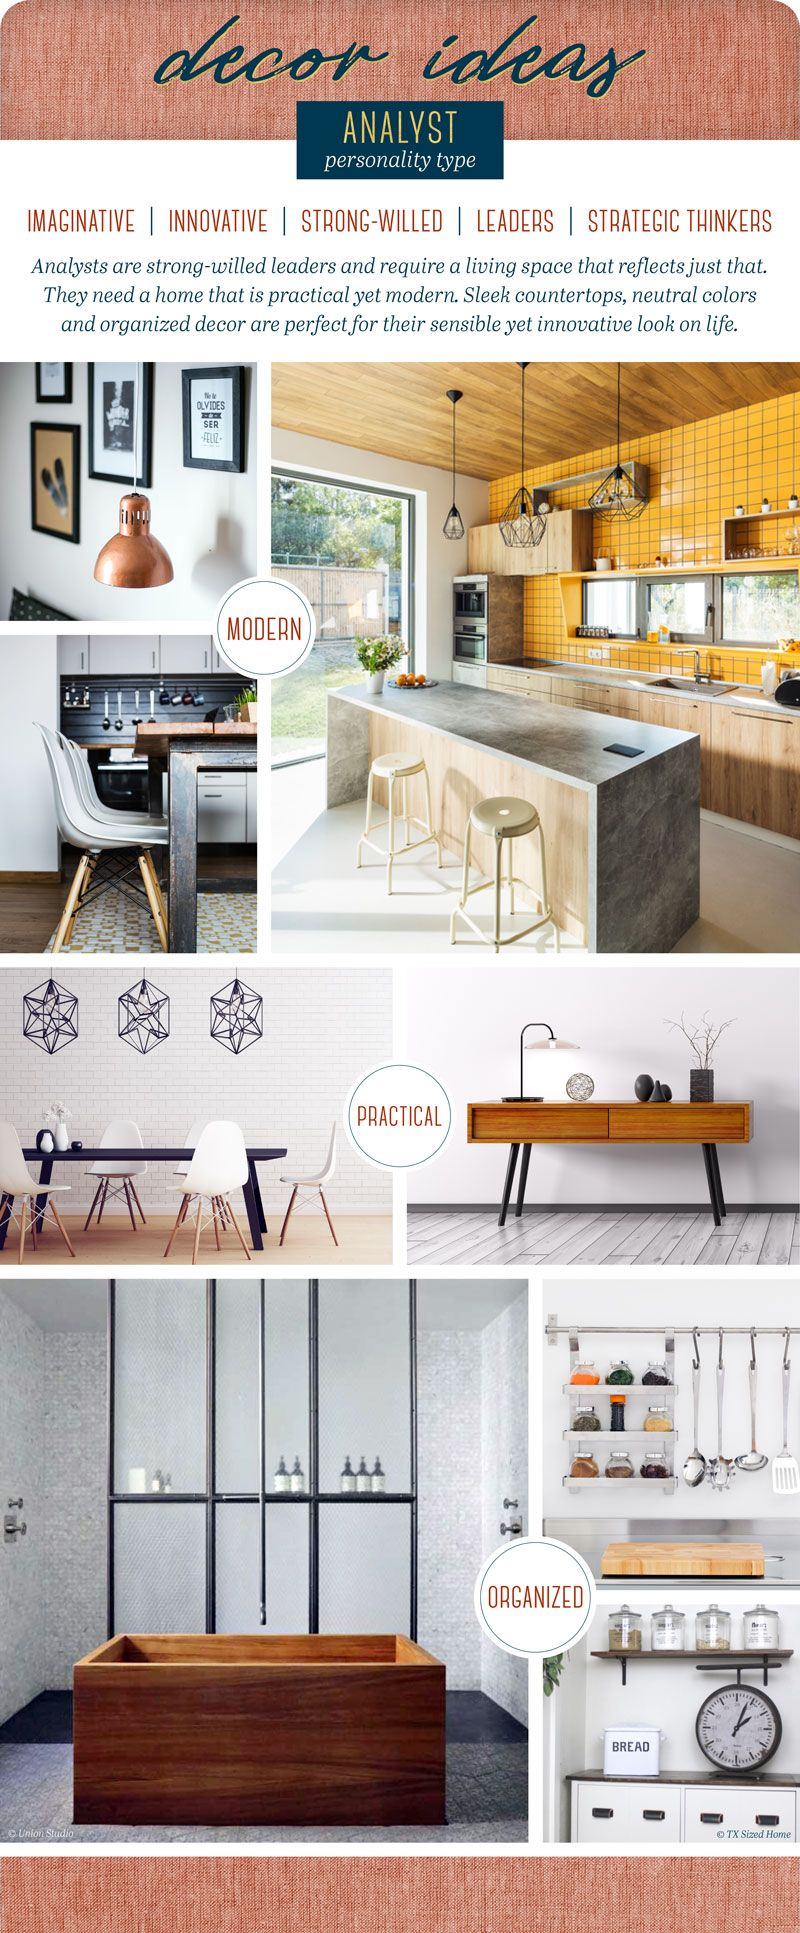 How To Decorate Your Home With Personality: Decorating Ideas For Different Personality Types